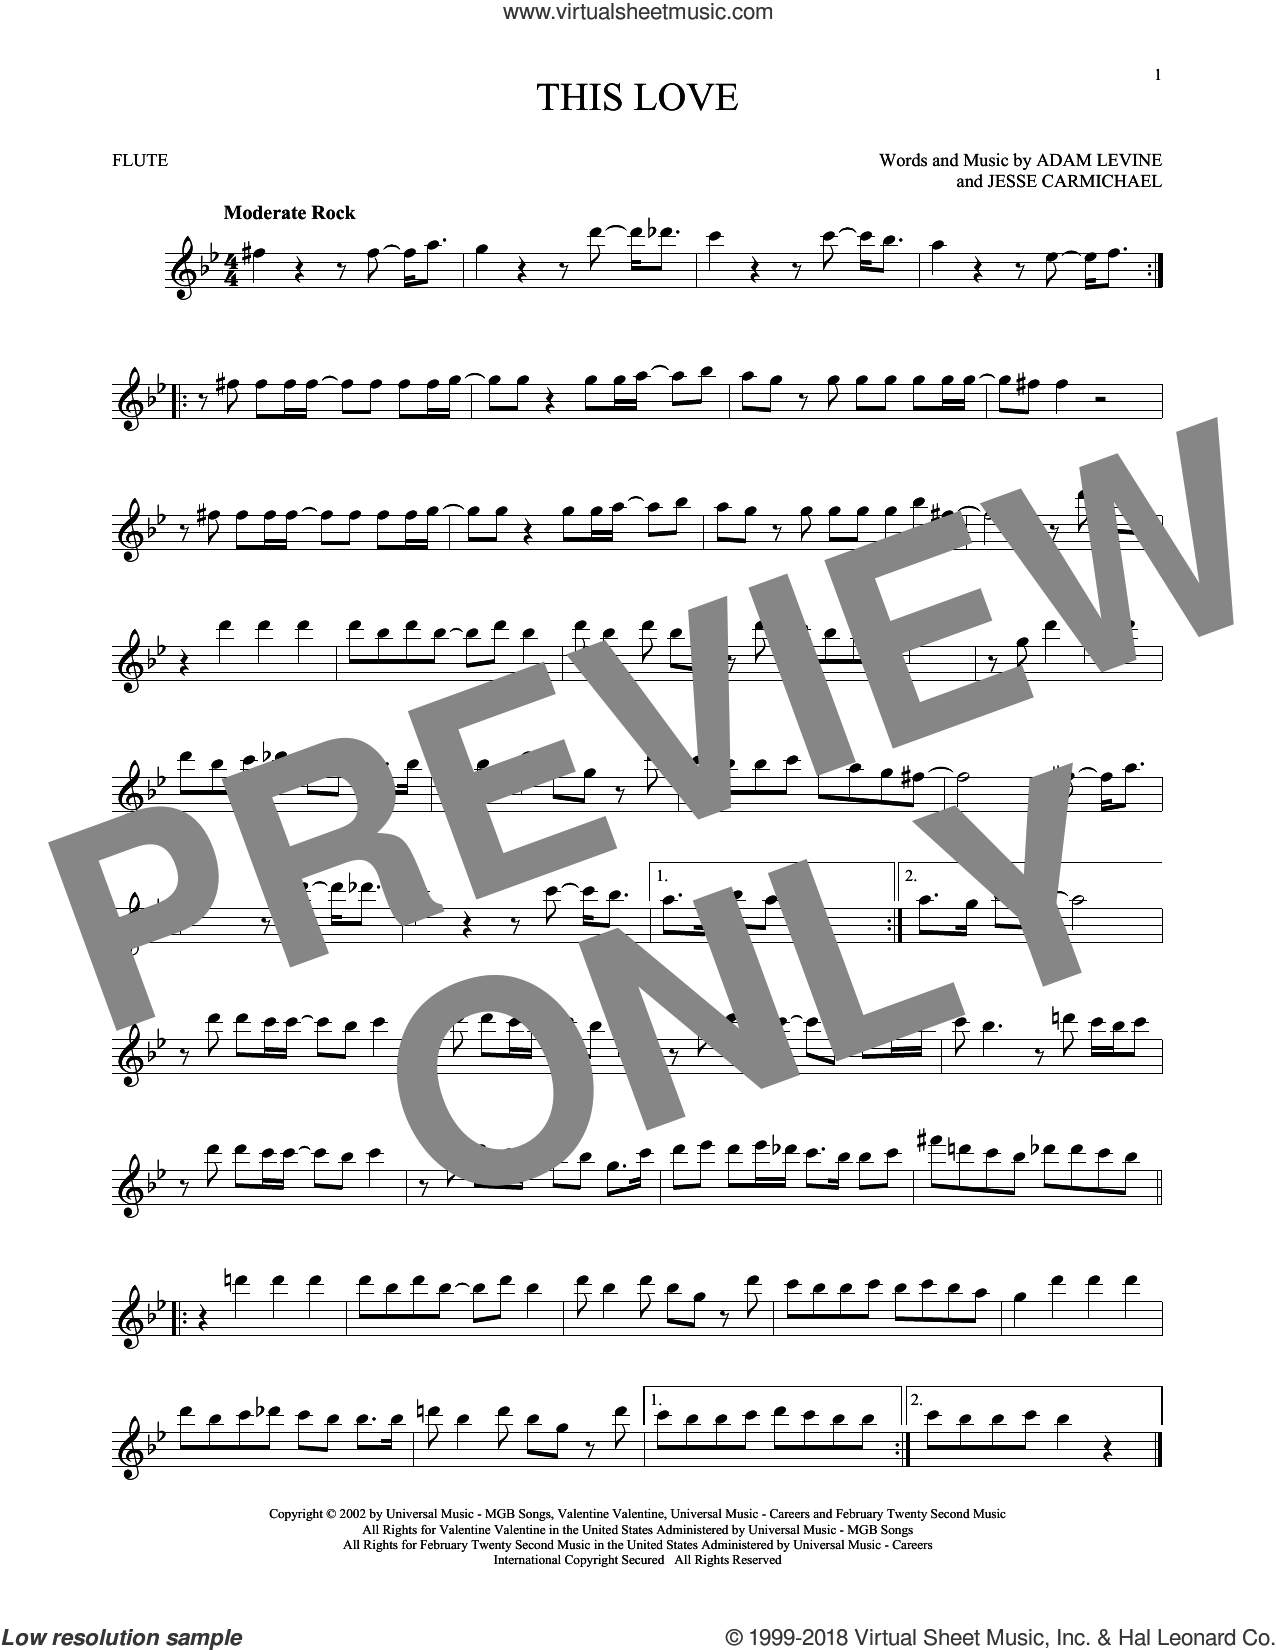 This Love sheet music for flute solo by Jesse Carmichael